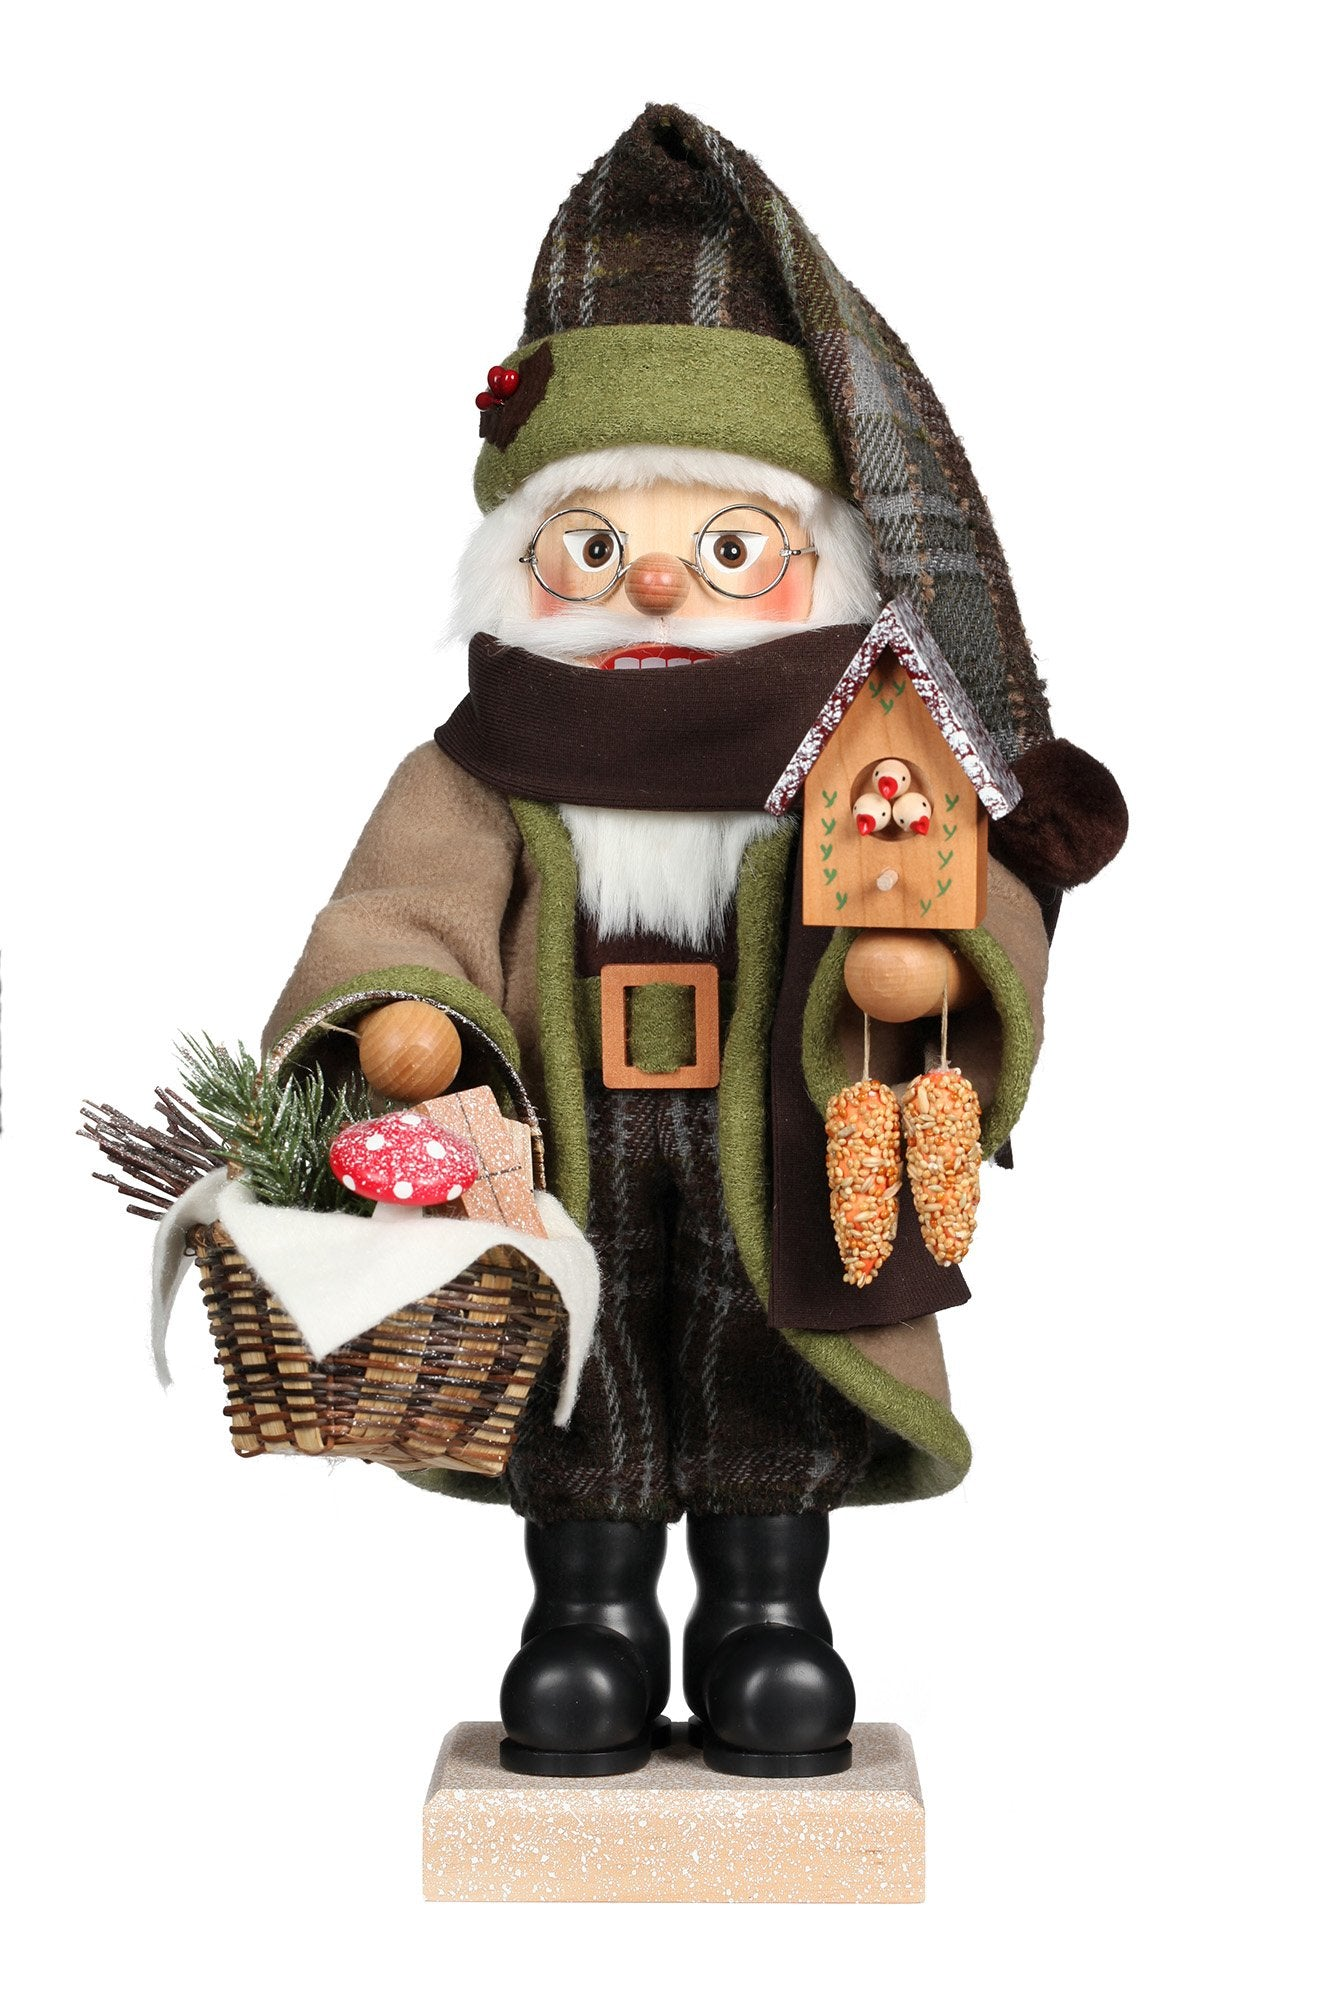 Nutcracker (Premium Collector's Edition) - Forest Friend with Birdhouse